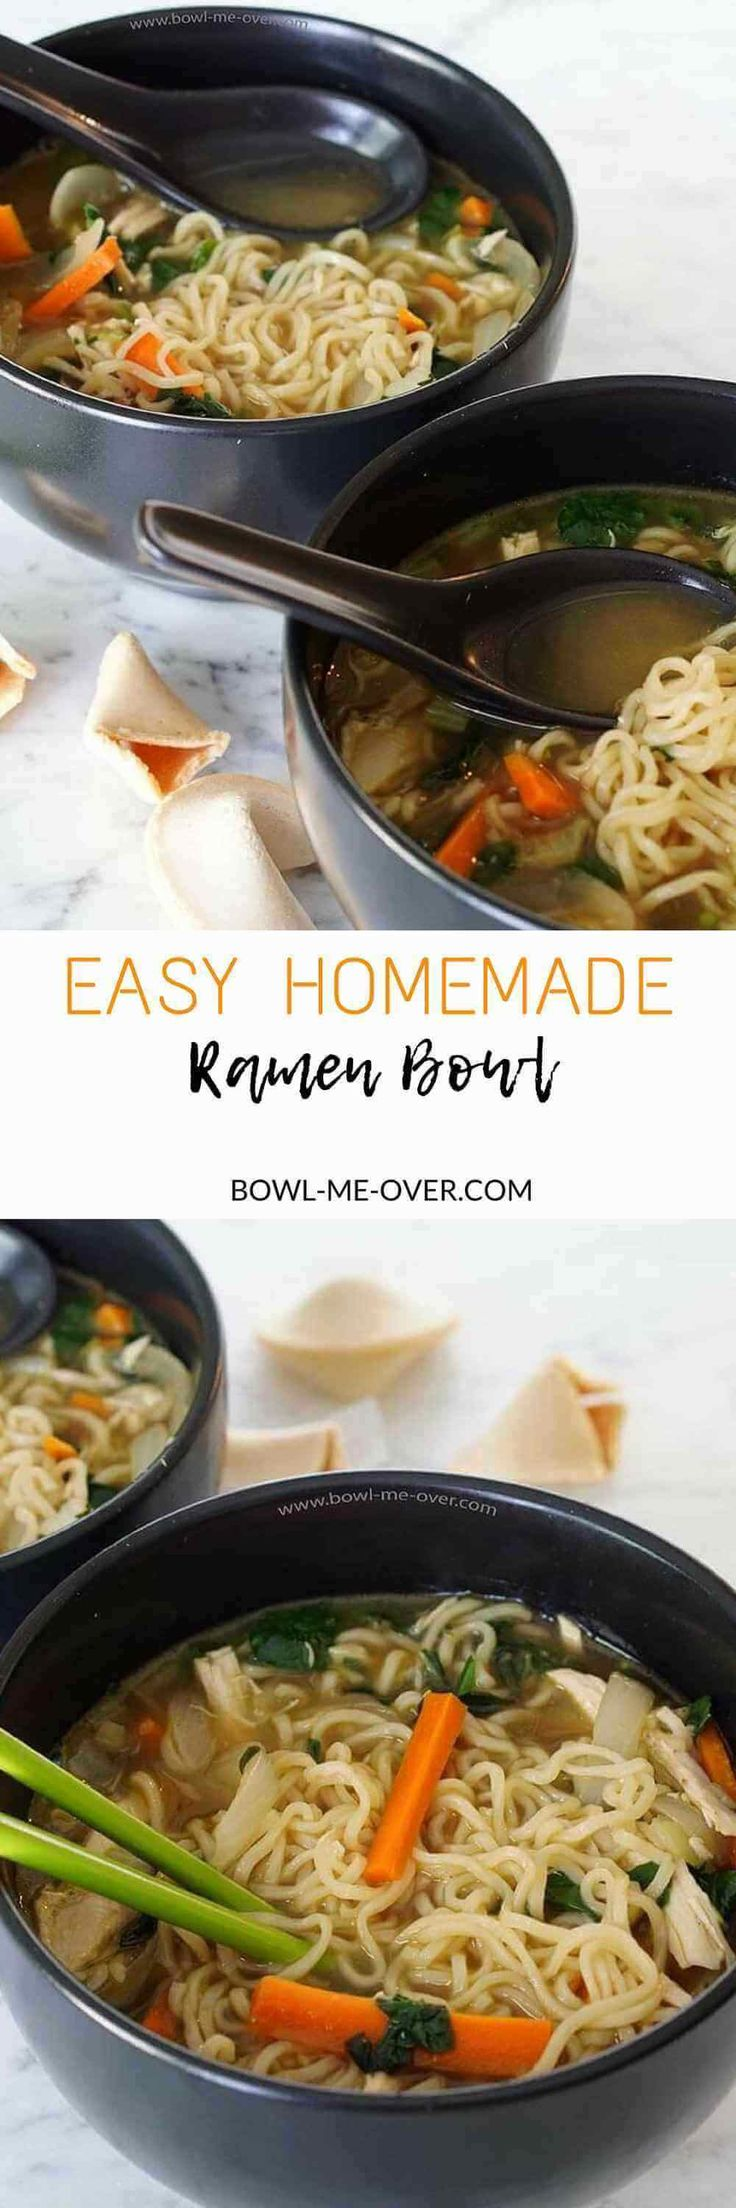 Want to enjoy a great bowl of Ramen at home? Now you can with this Easy Homemade Ramen Bowl Recipe - big flavor and only 20 minutes to make!